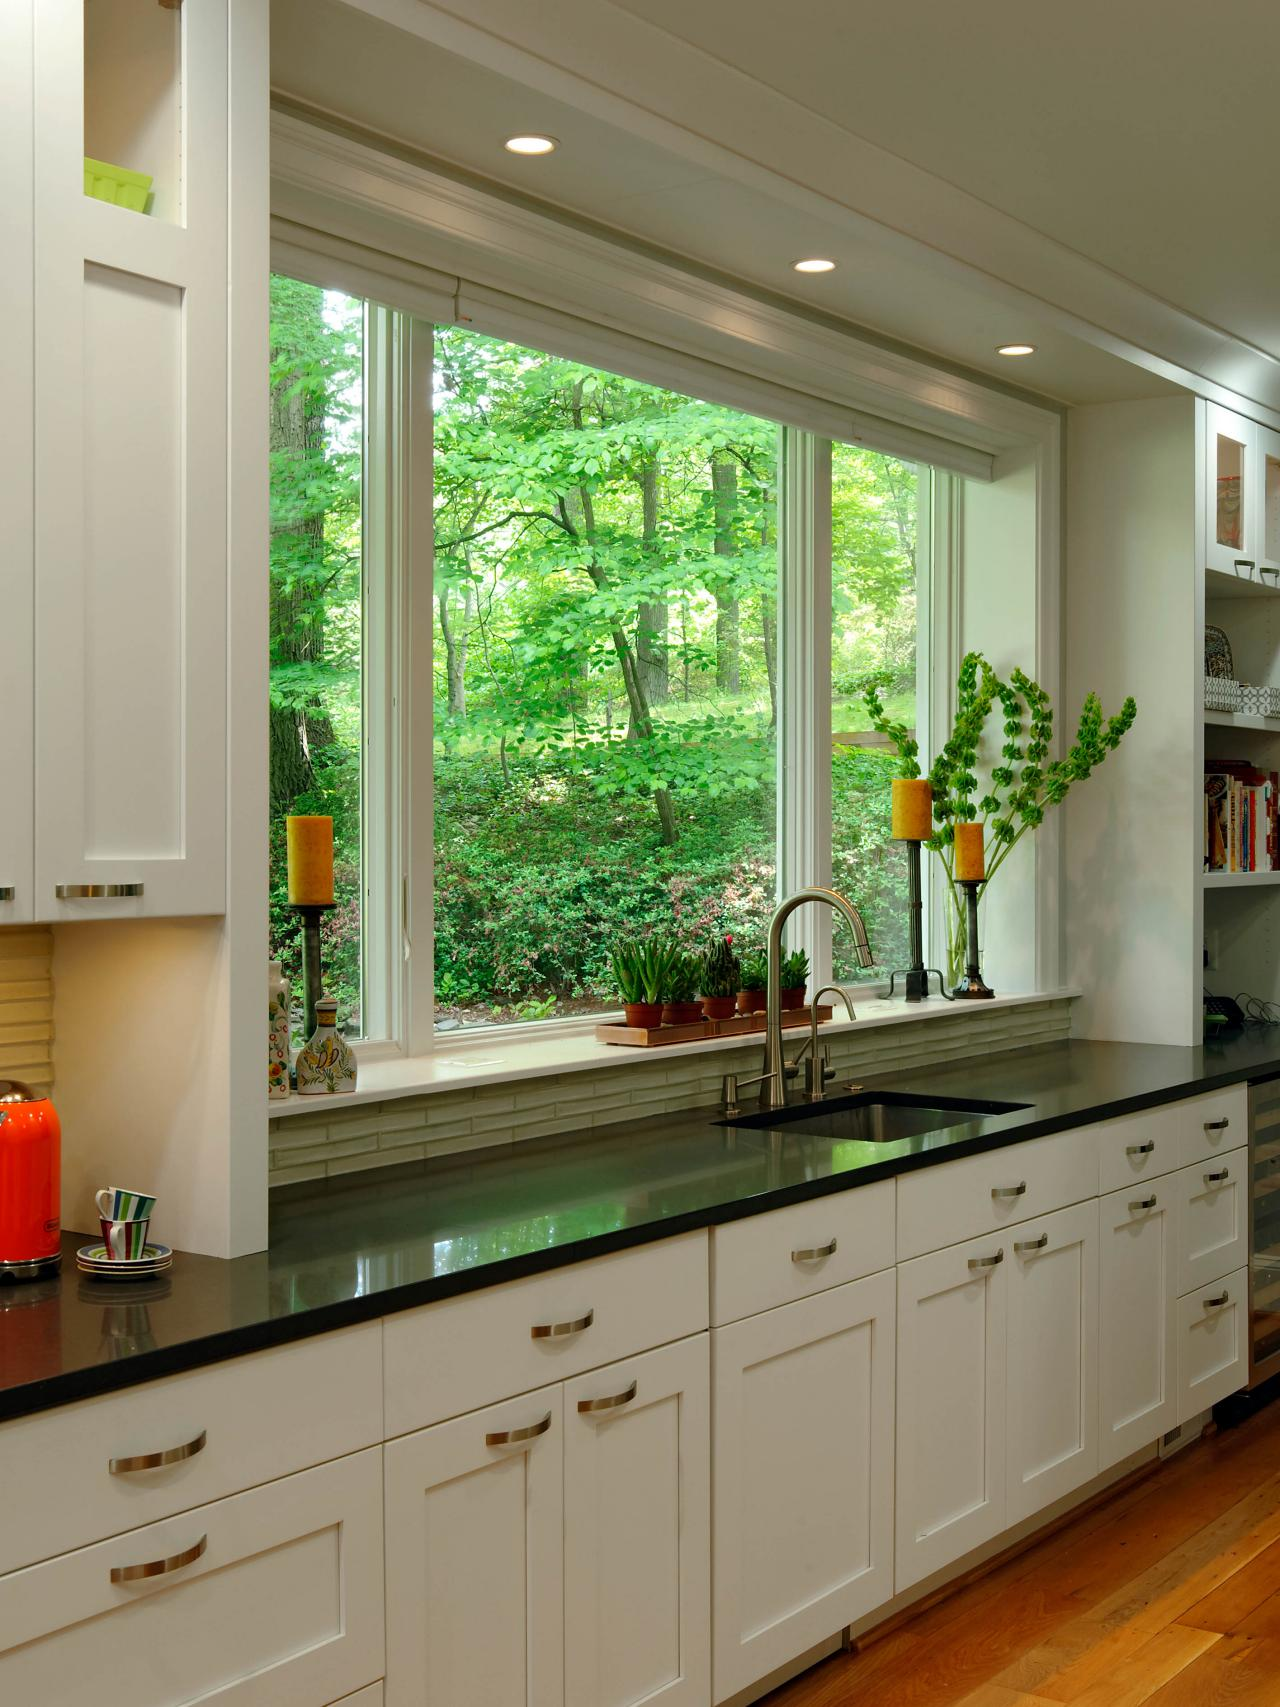 Kitchen remodeling blog kitchen window treatments ideas for Picture window ideas